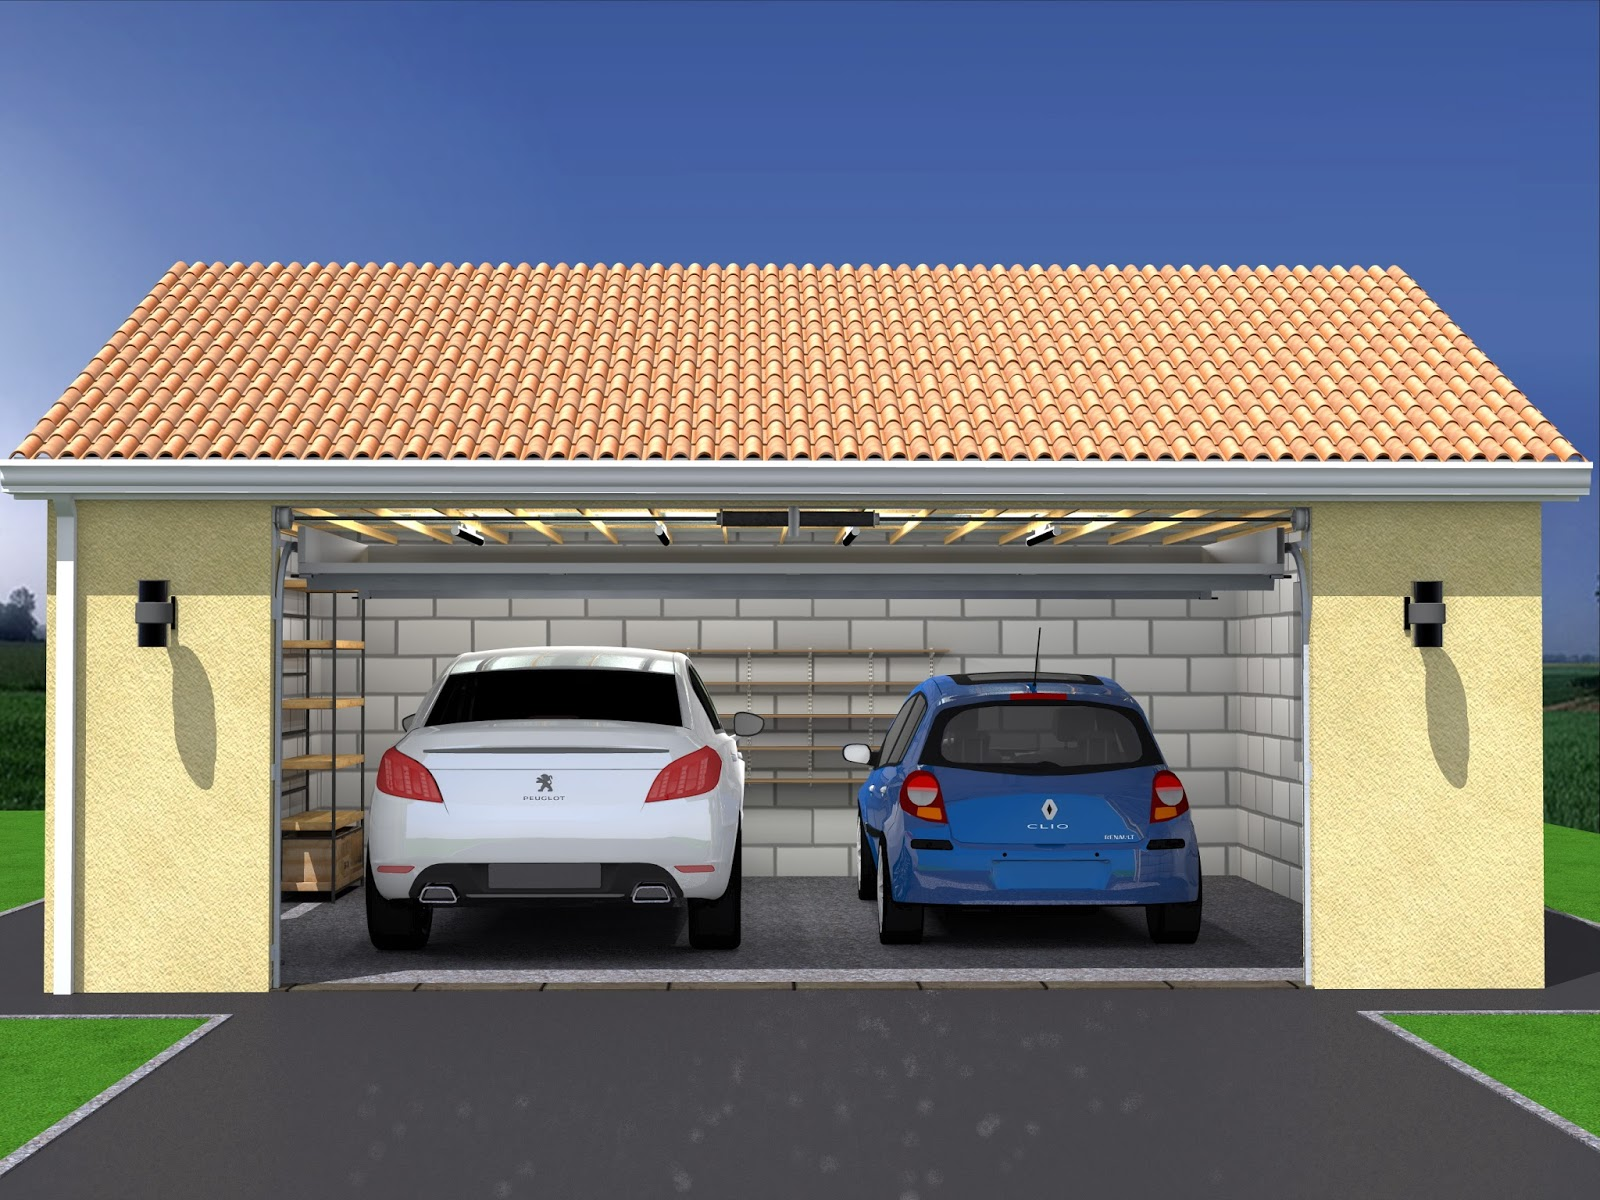 projet de construction de garage double